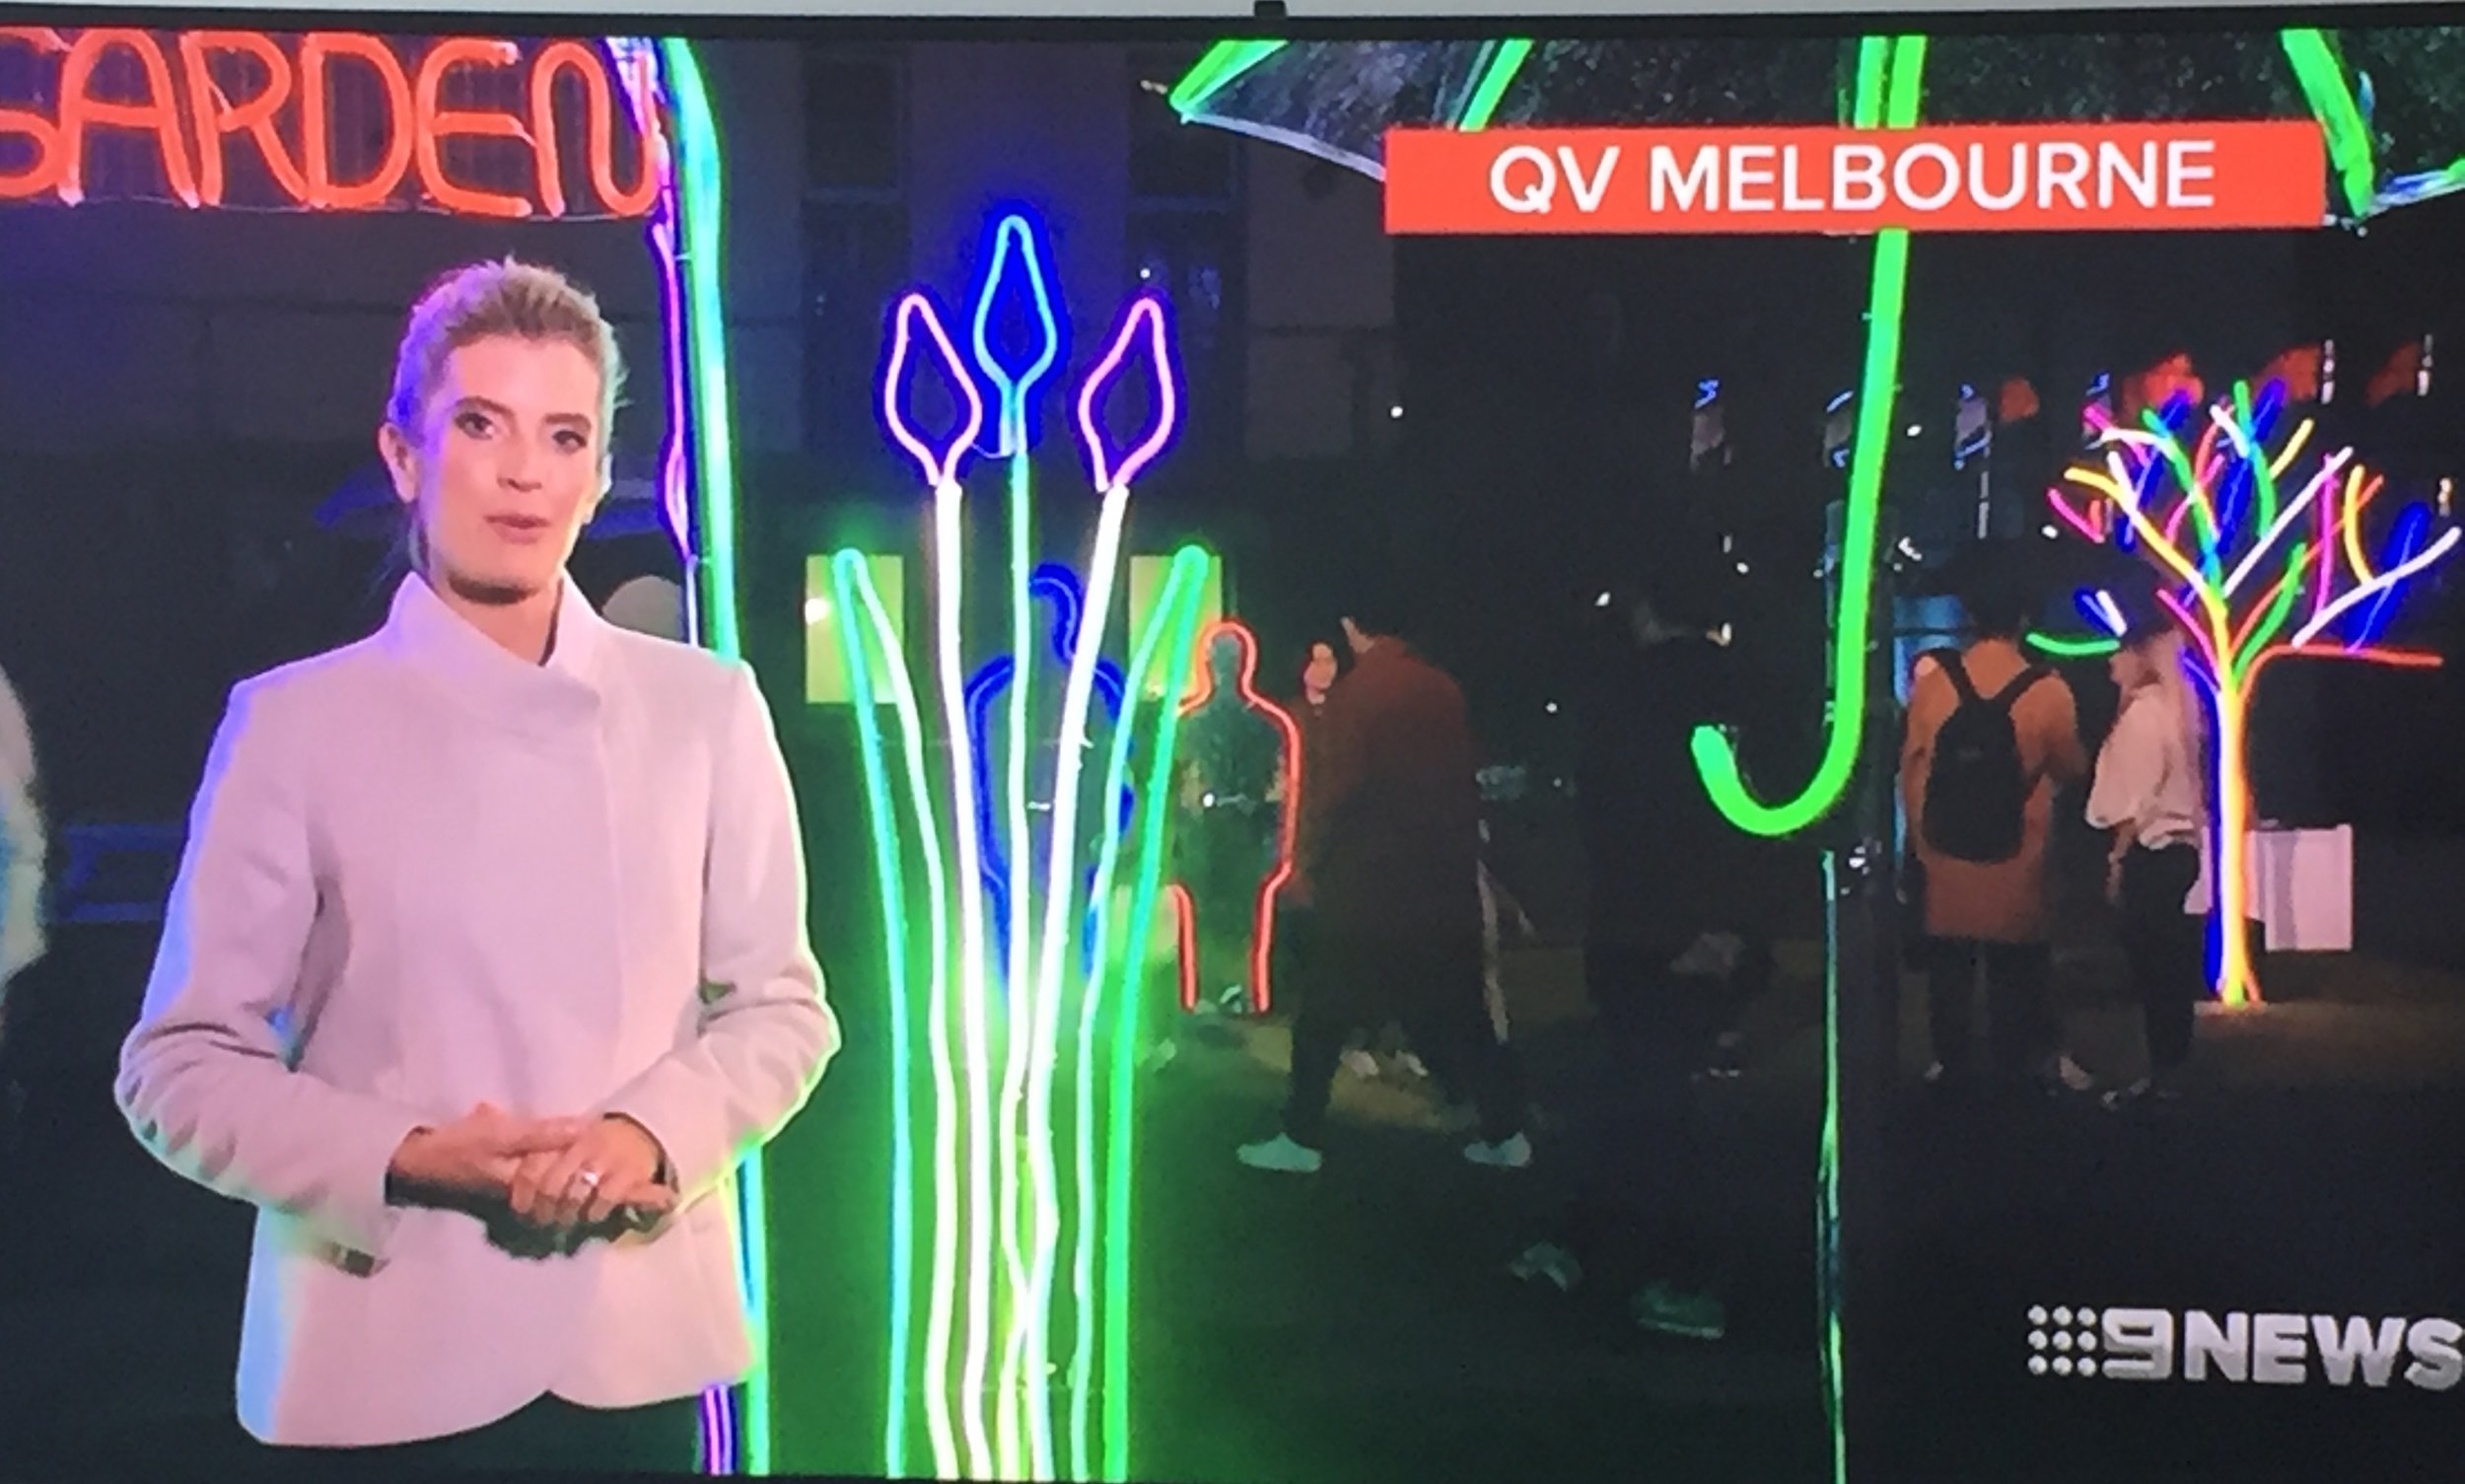 20170517 Ch 9 News QV Melbourne Neon Night Garden16.jpeg